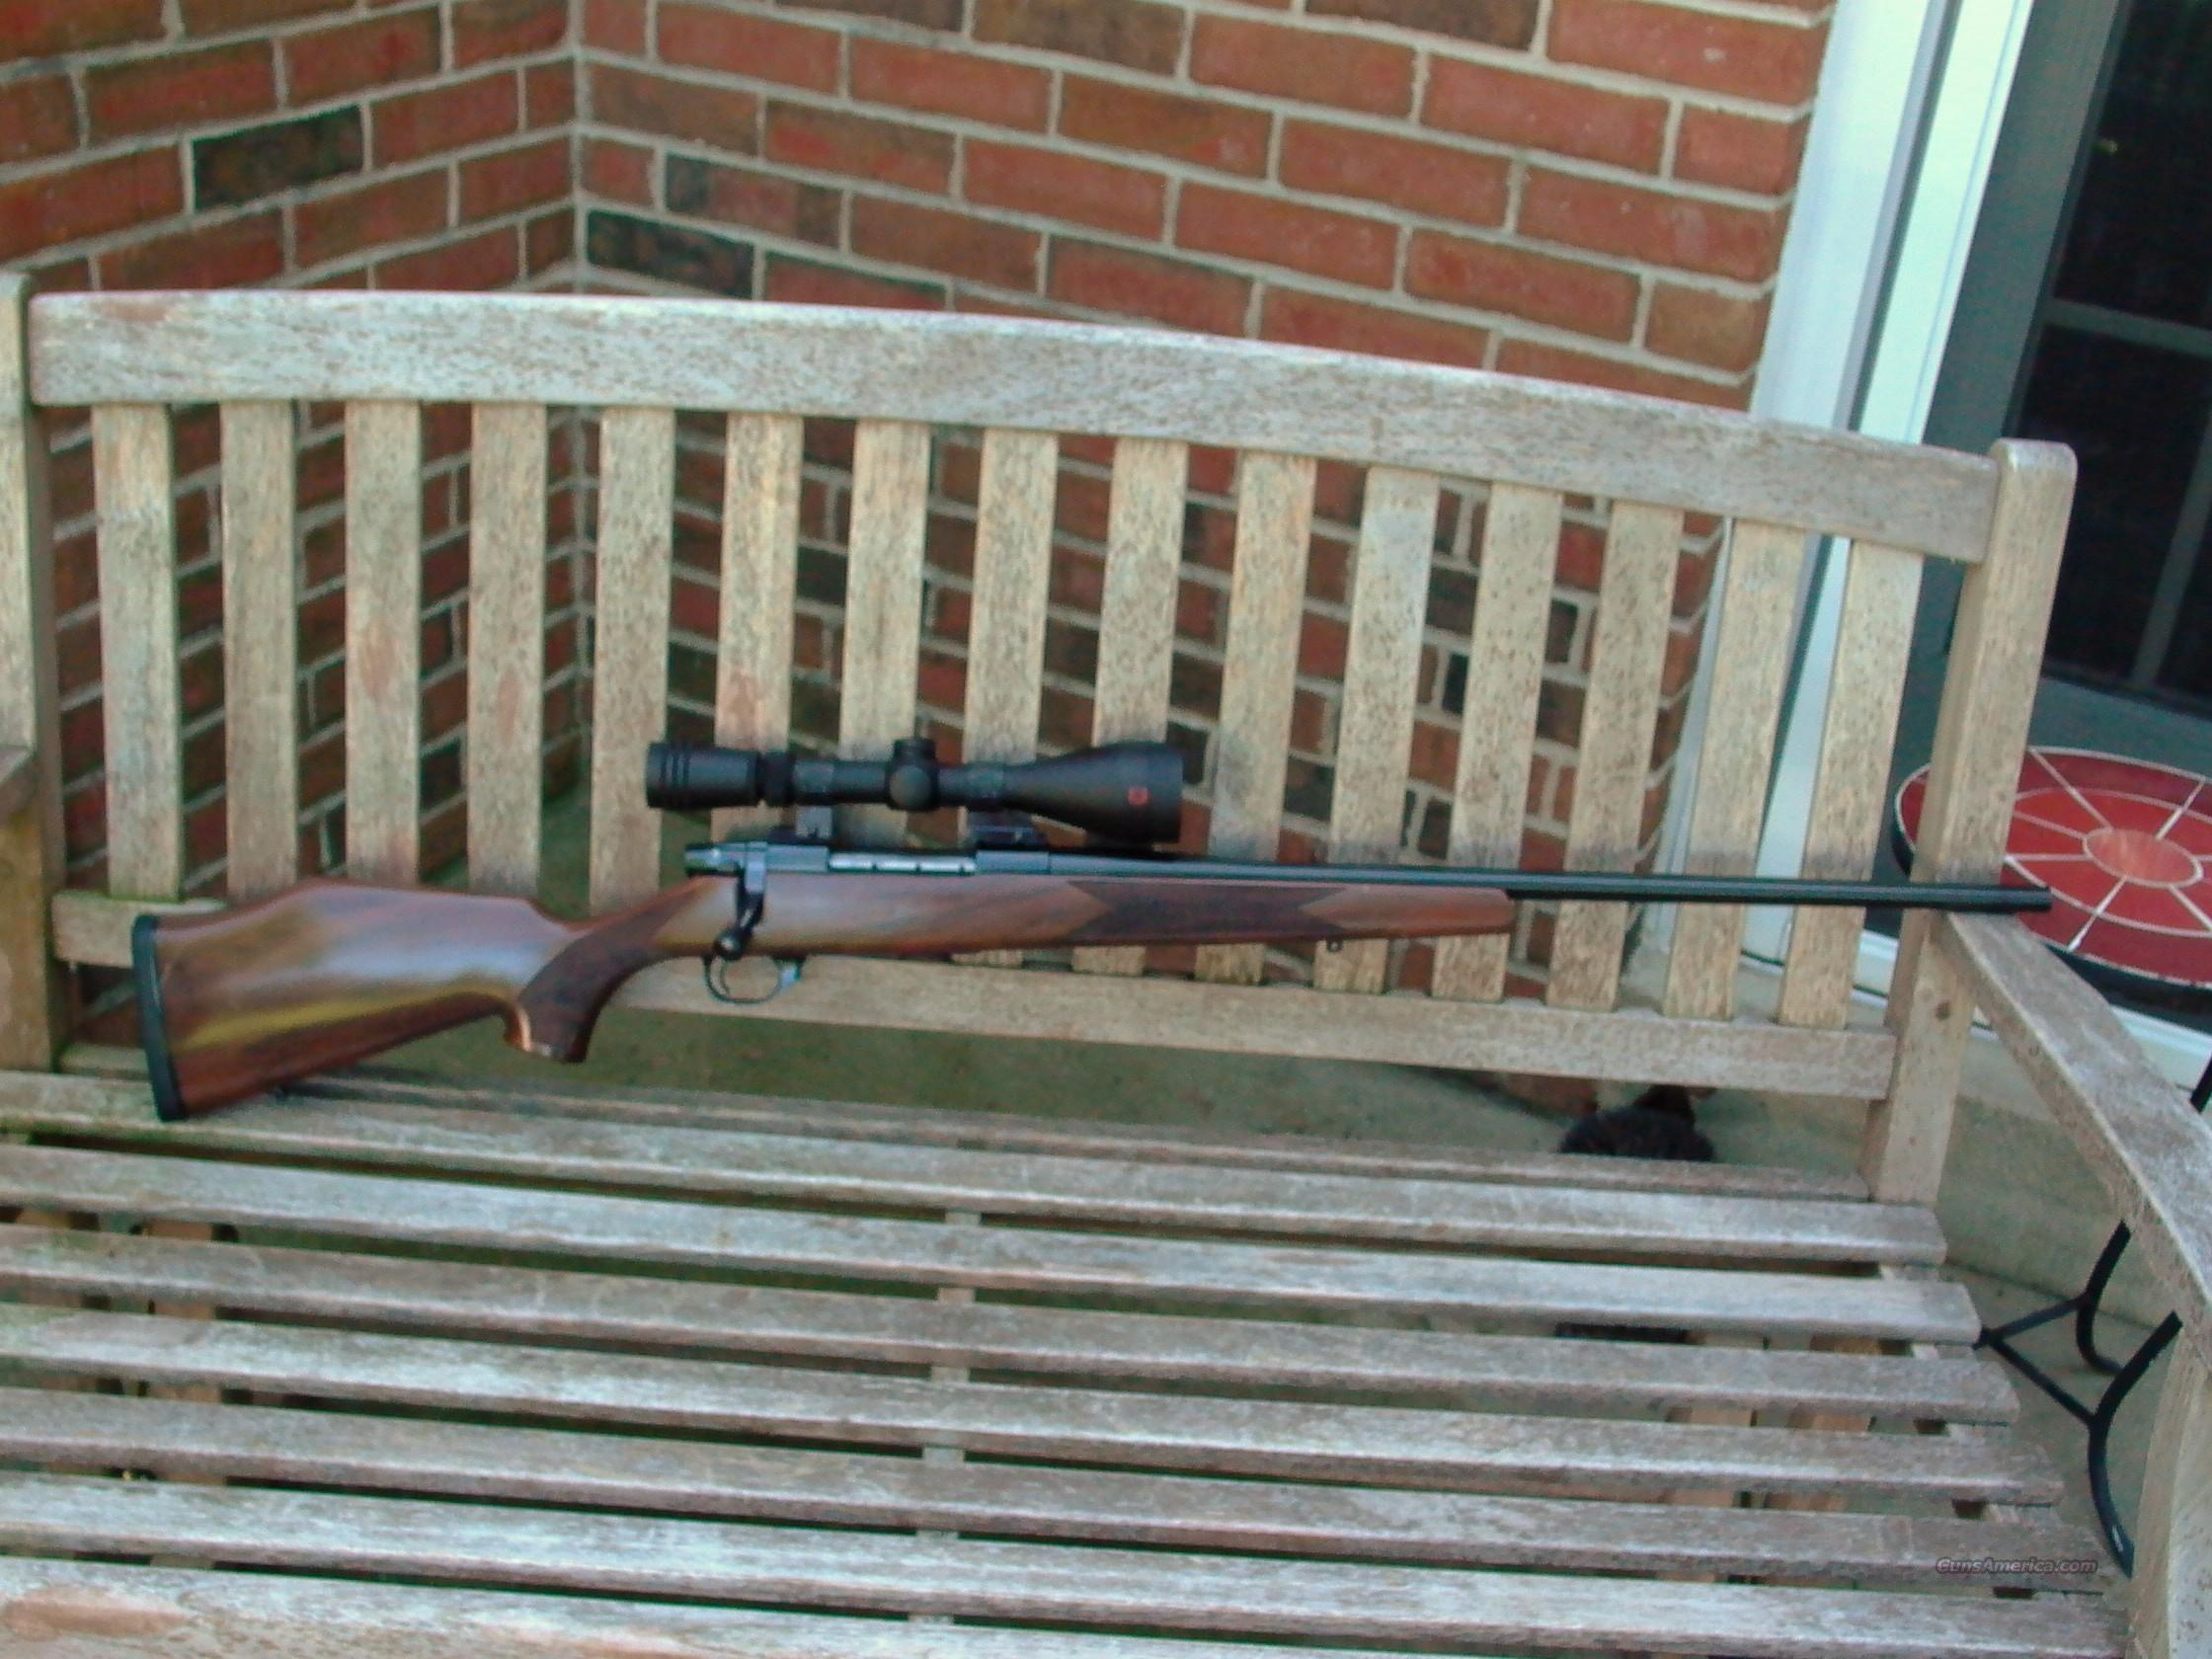 Weatherby Vanguard 300 Wby Magnum  Guns > Rifles > Weatherby Rifles > Sporting